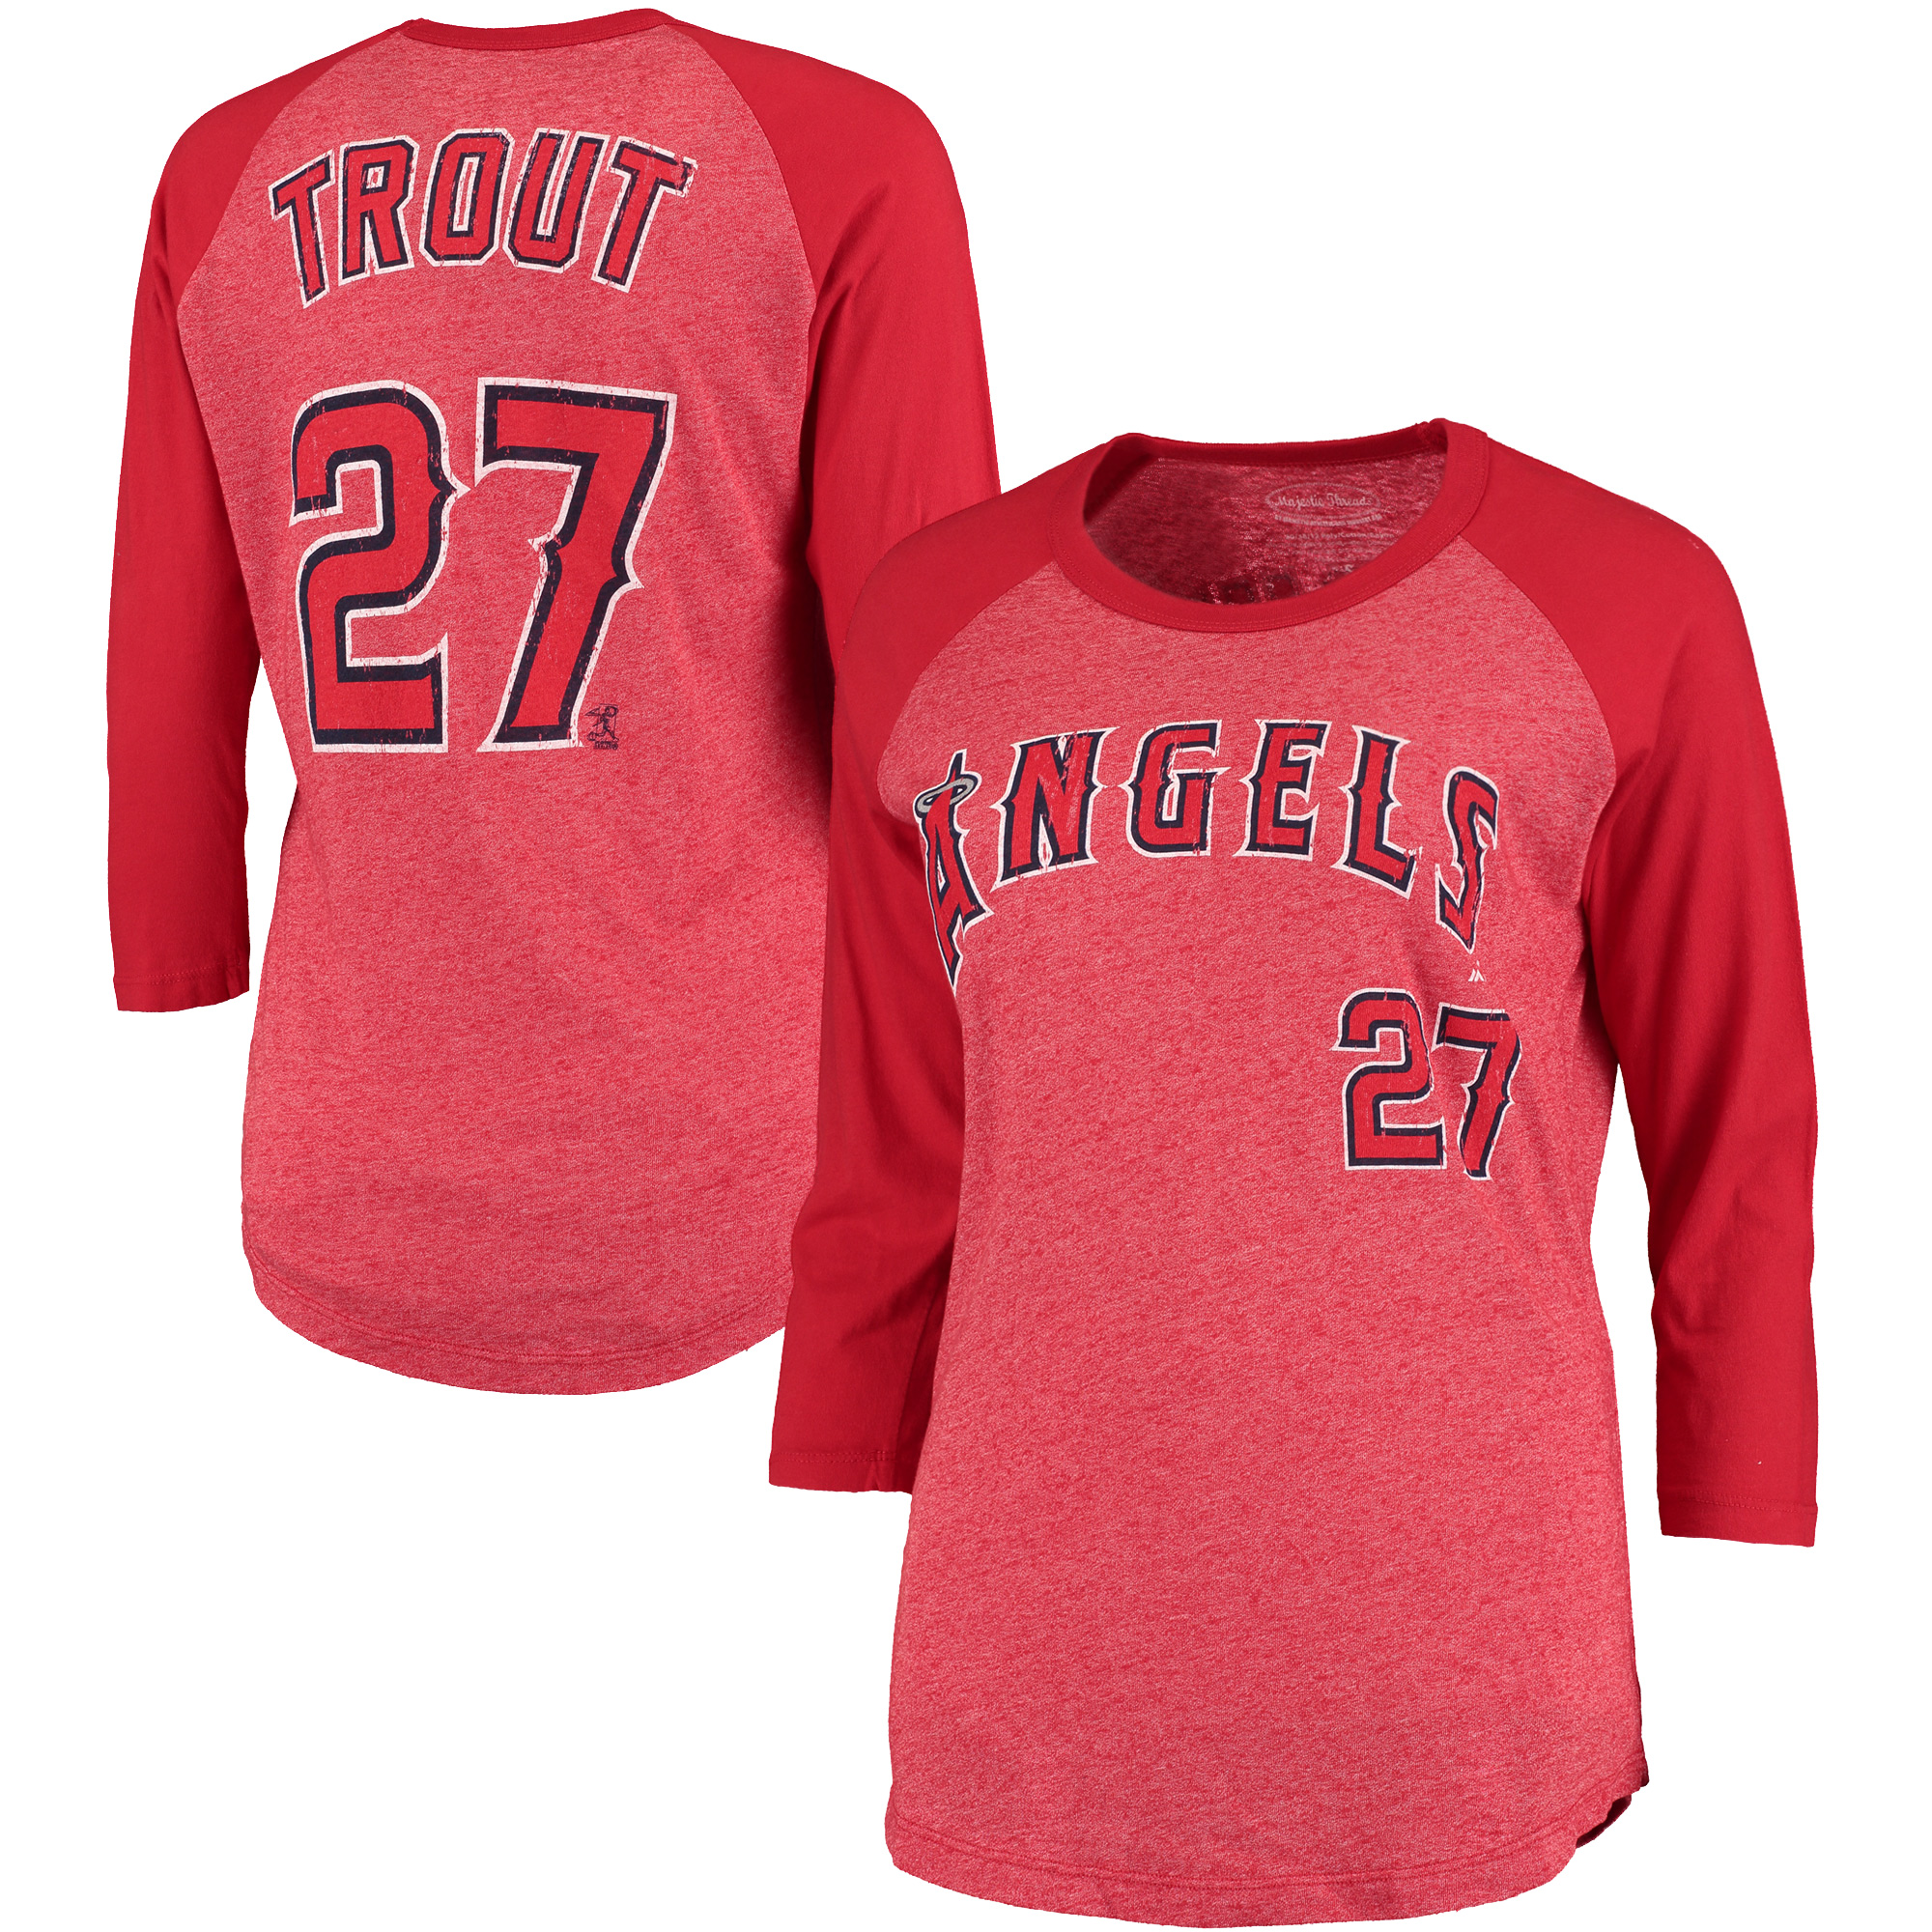 Mike Trout Los Angeles Angels Majestic Threads Women's 3/4-Sleeve Raglan Name & Number T-Shirt - Red